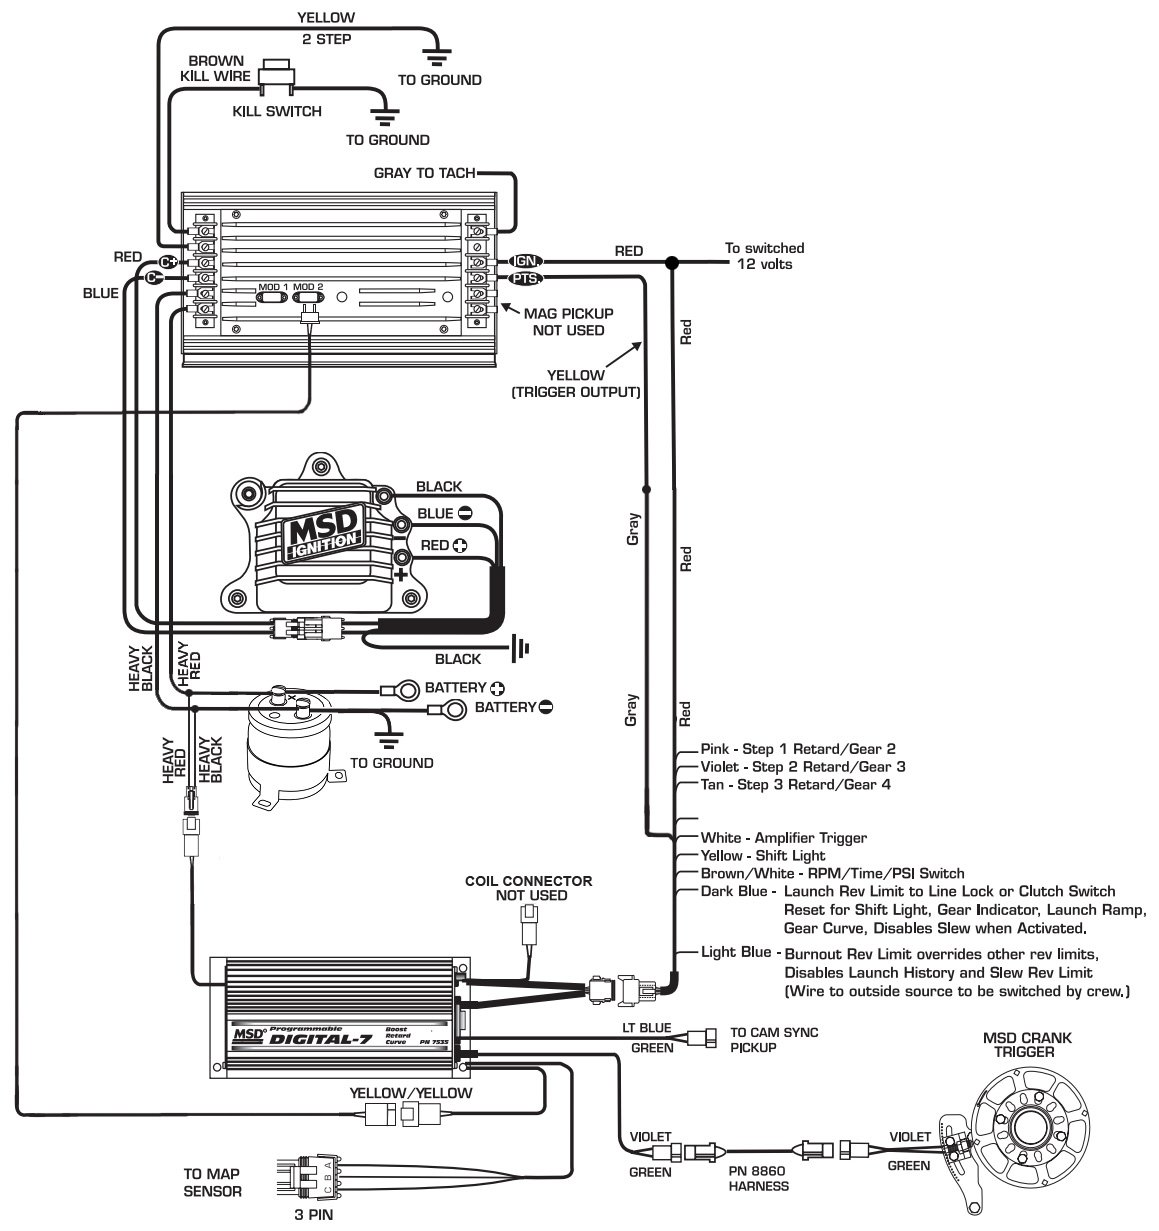 Car Alarm Wiring Diagram Diagrams Readingrat   With For Cars In Showy To together with Dei Remote Start Wiring Diagram moreover Dei Wiring Diagrams moreover Wiring Diagram Car Starter Motor together with Viper Remote Start Wiring Diagram. on valet remote start wiring